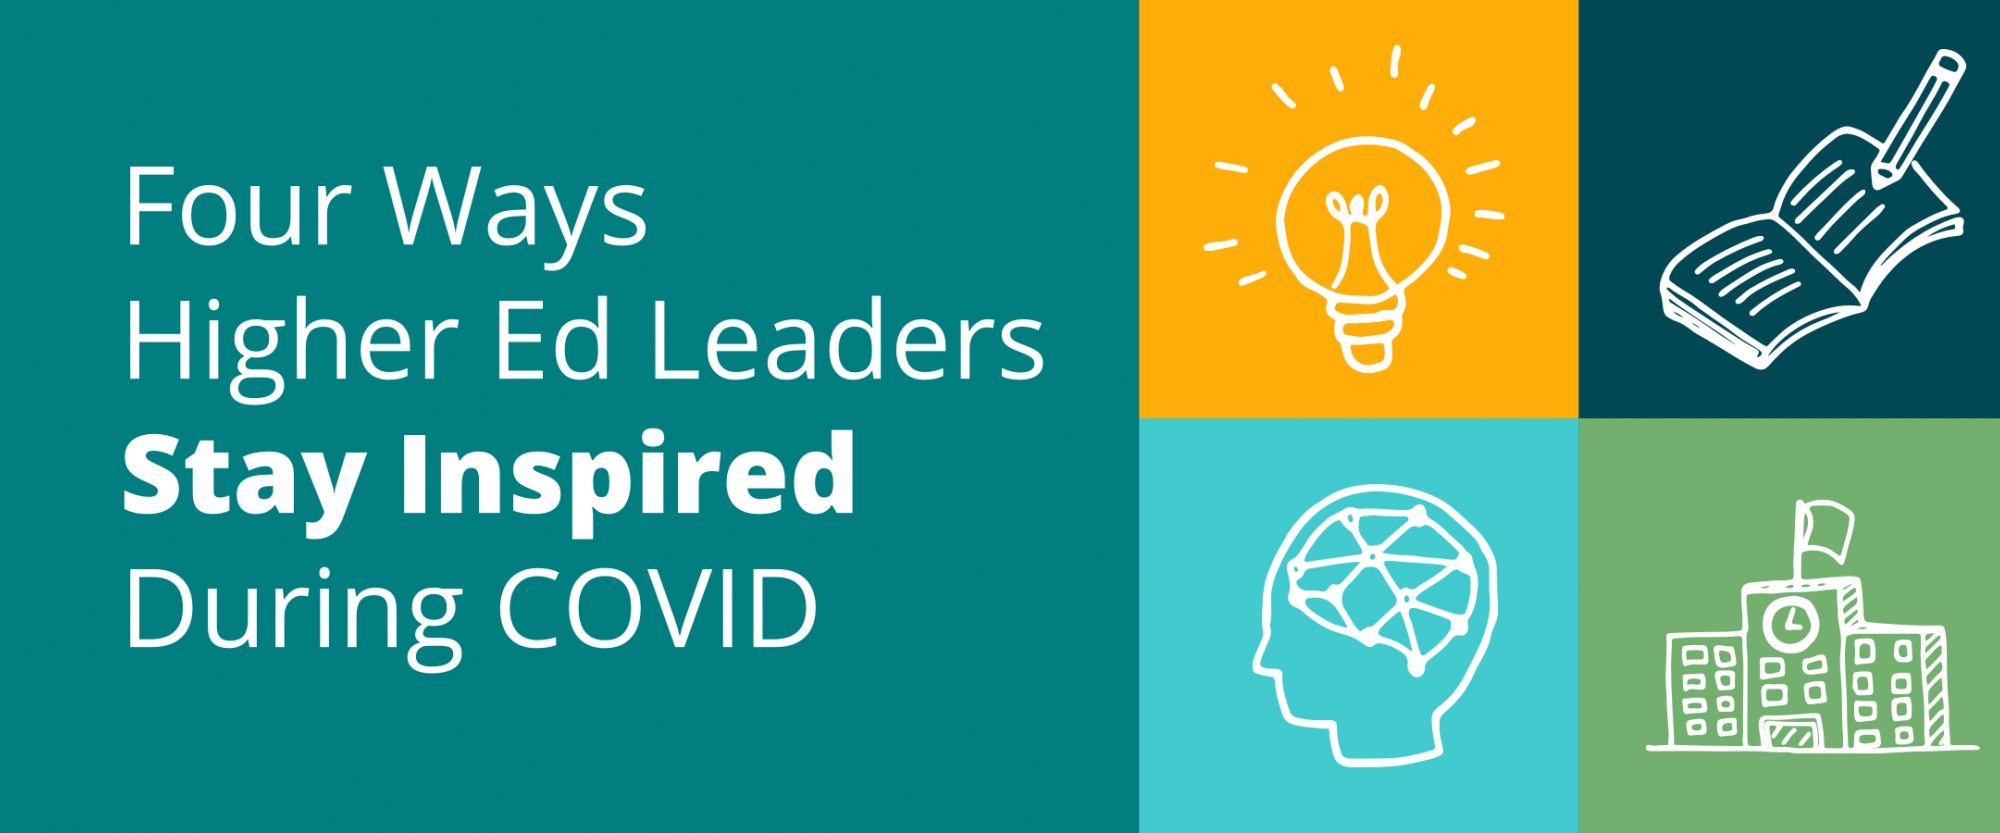 Four Ways Higher Ed Leaders Stay Inspired During COVID